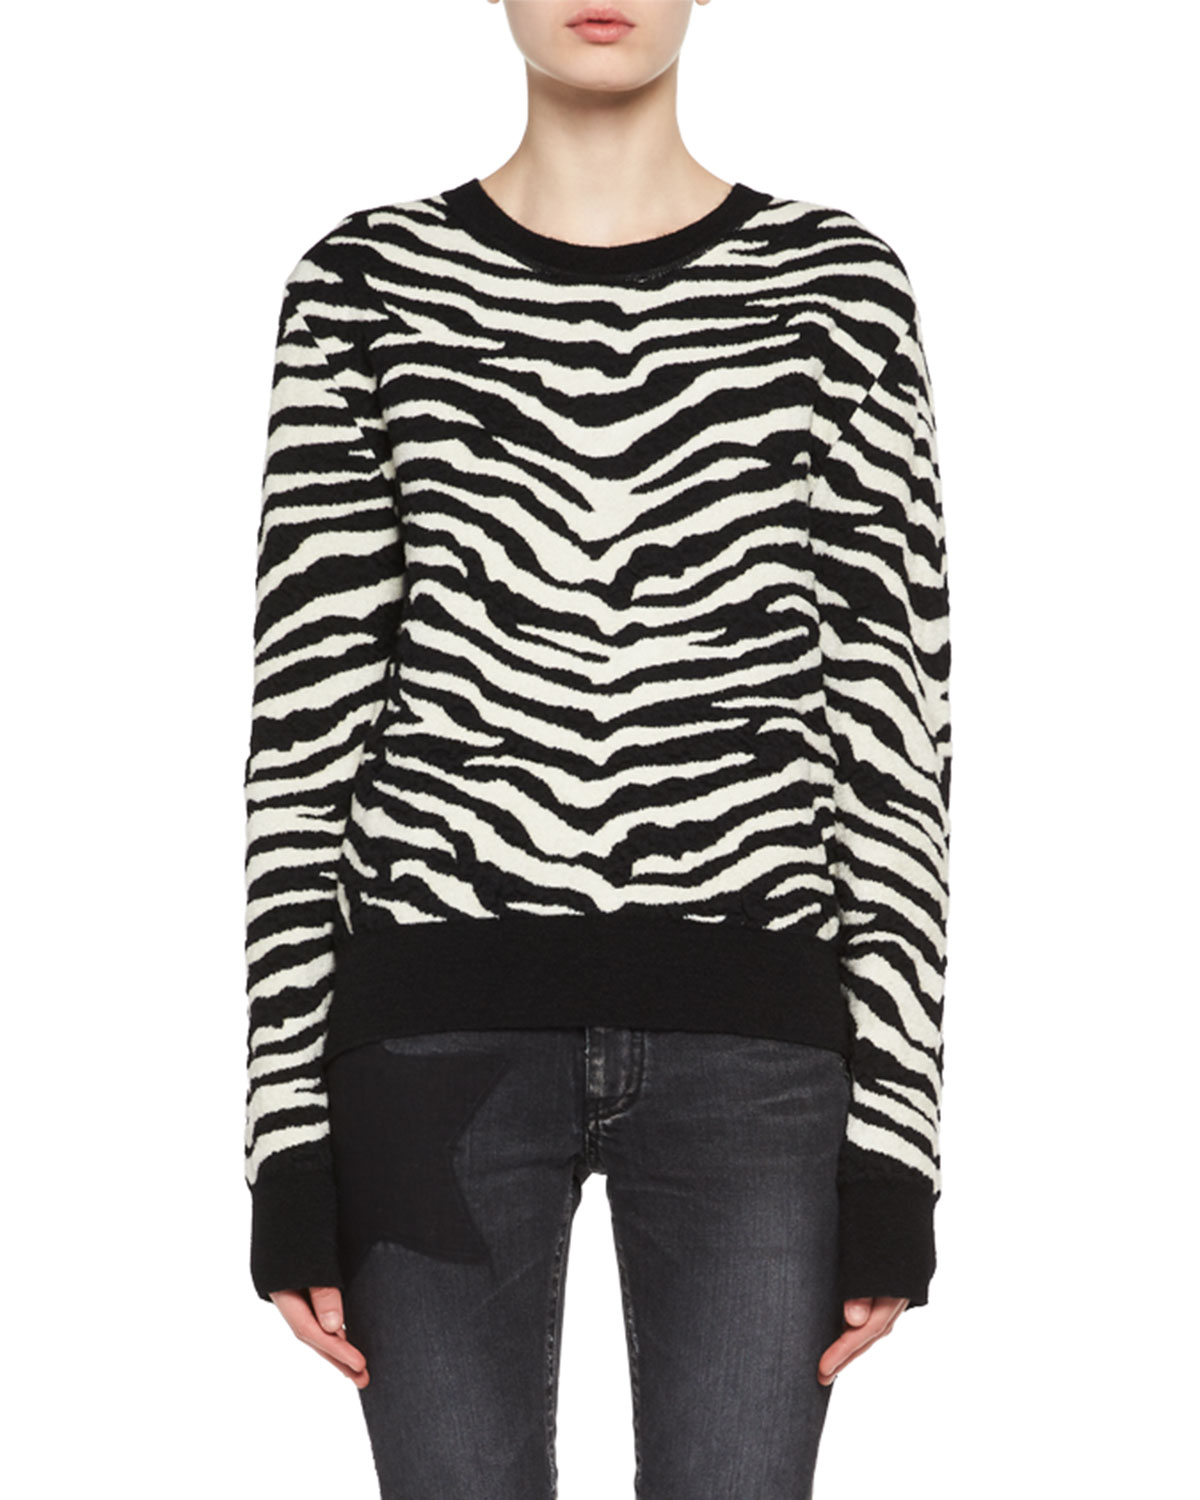 baacd3a8e2 Saint Laurent Zebra Jacquard Sweater